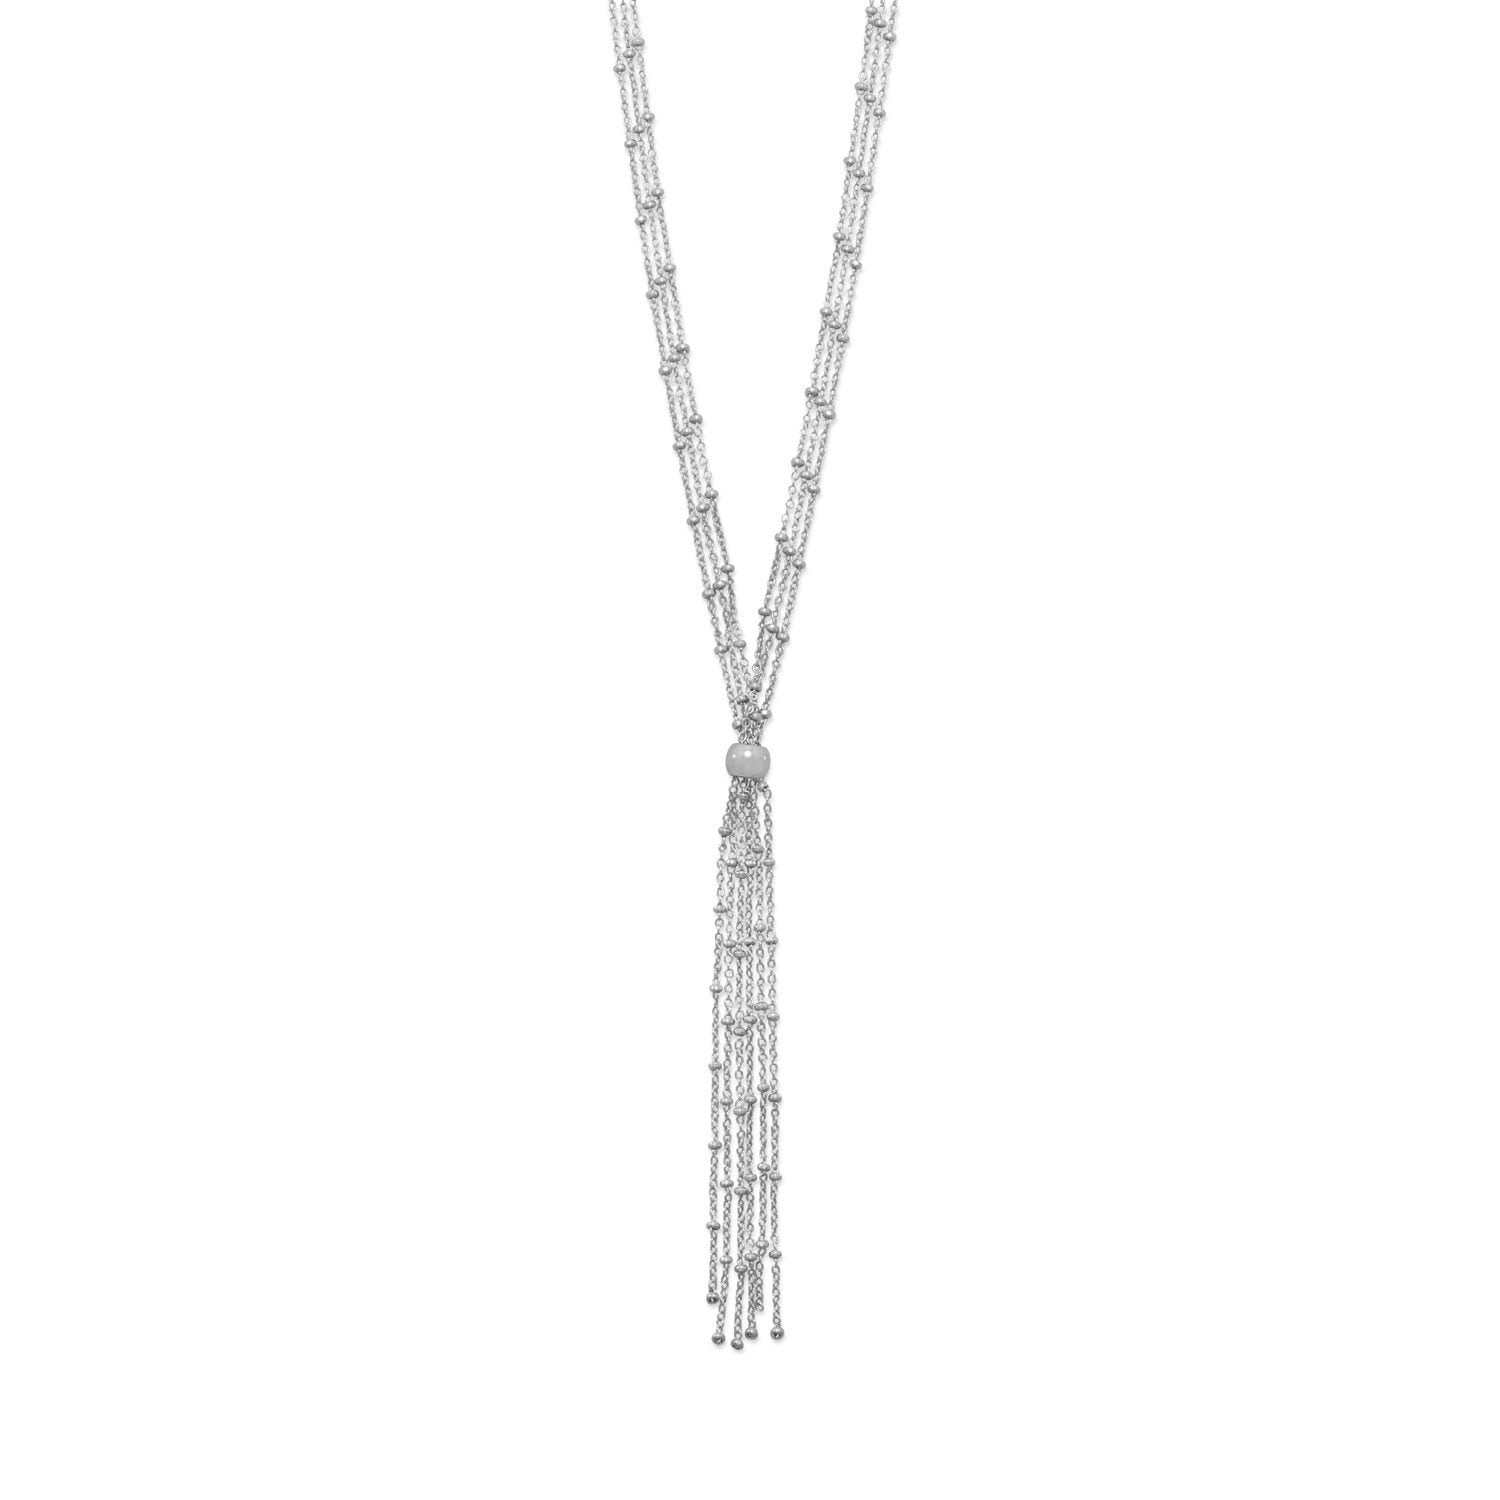 Rhodium Plated Satellite Chain Bolo Necklace - Rocky Mt. Outlet Inc - Shop & Save 24/7